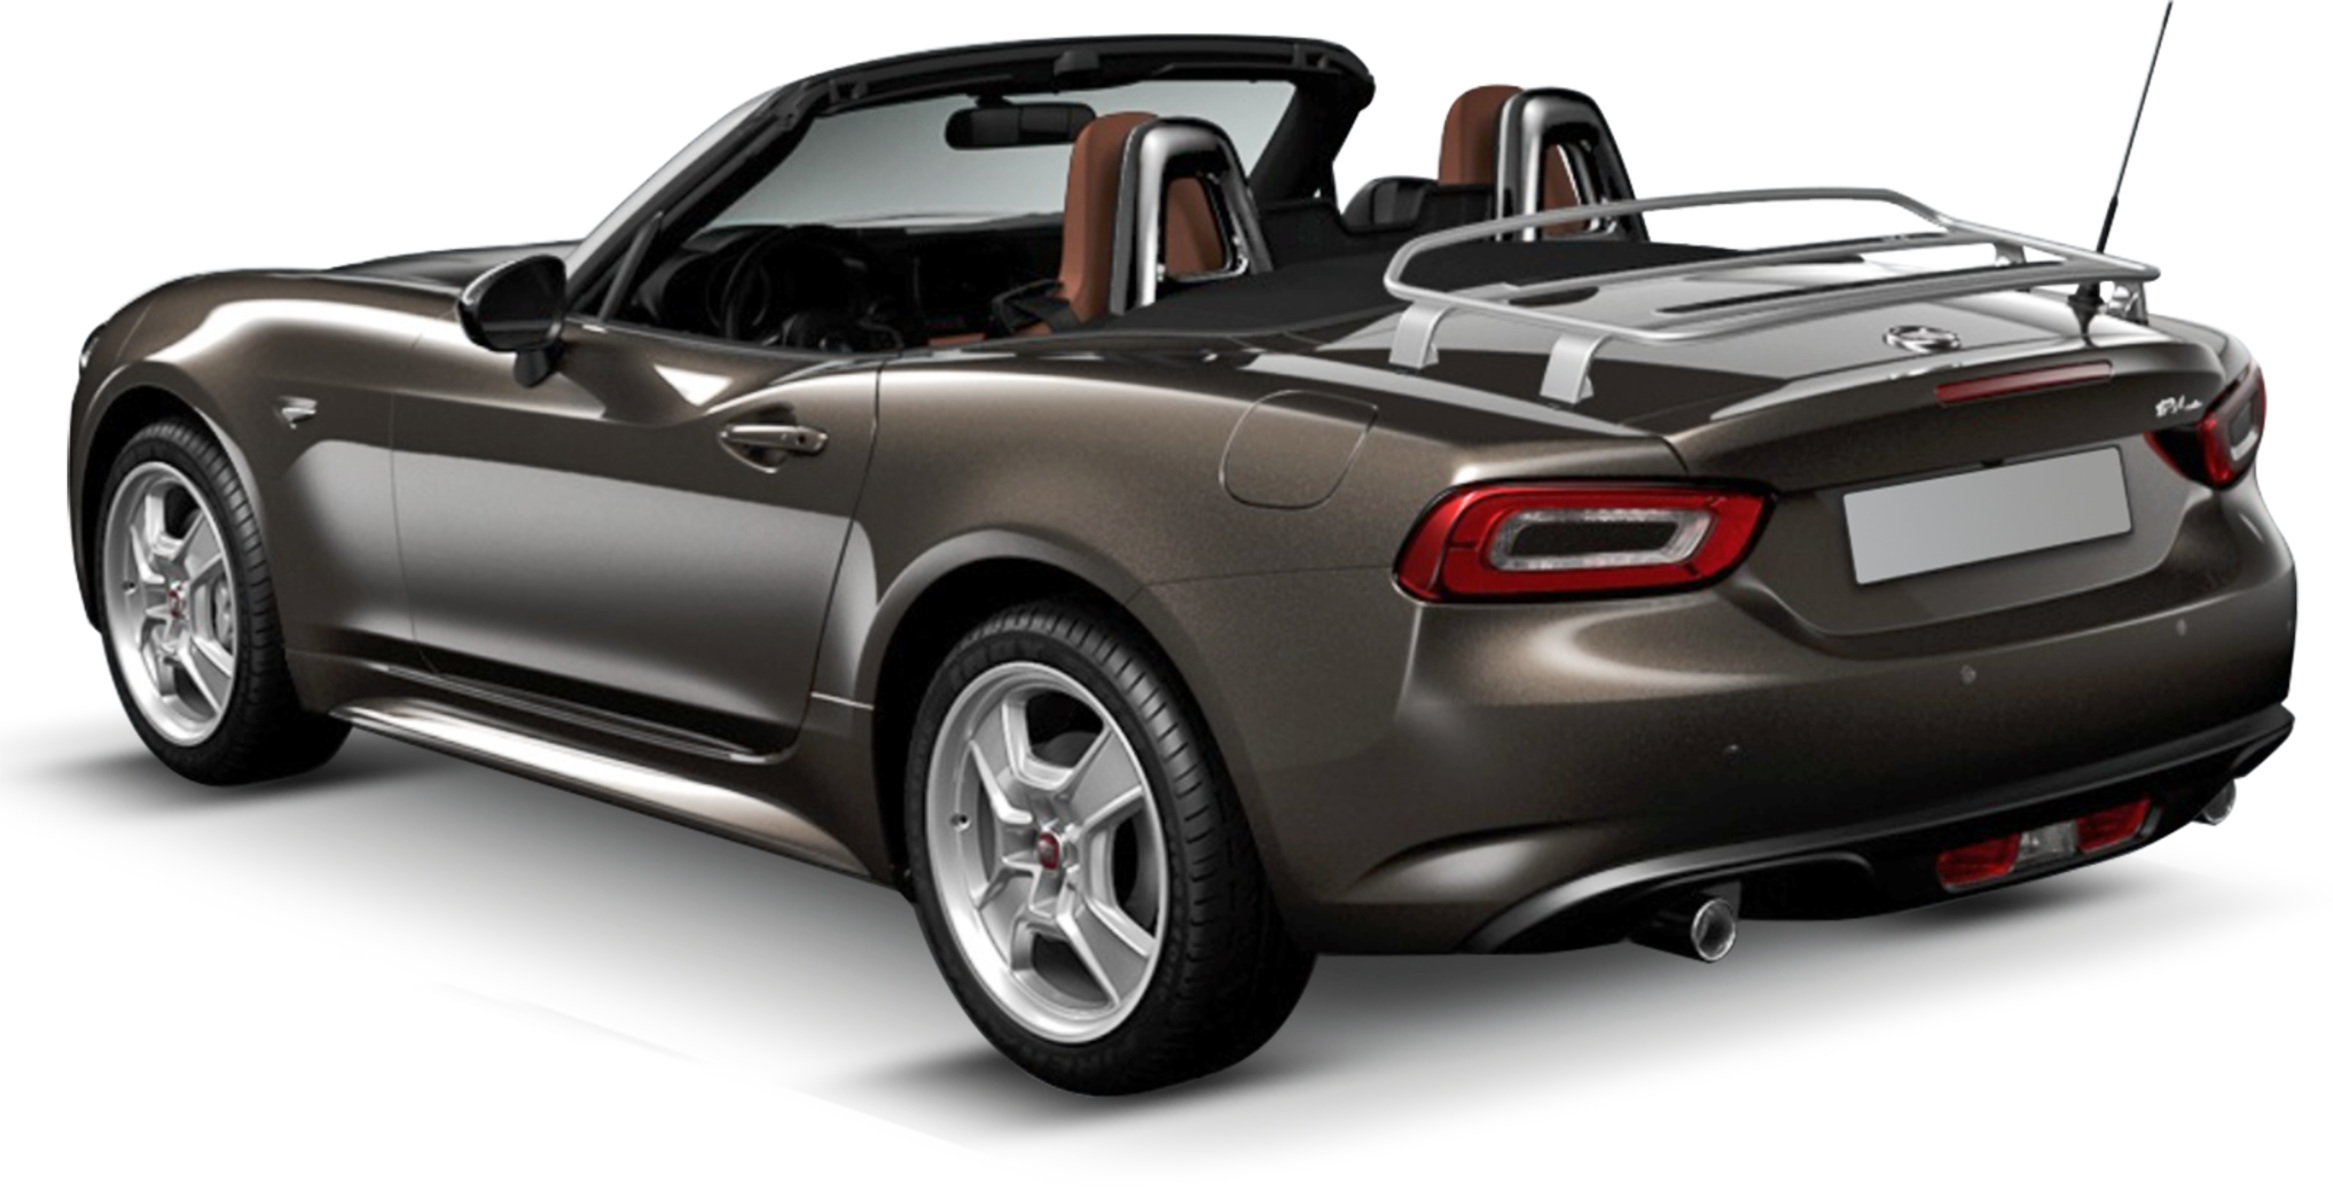 listino fiat 124 spider prezzo scheda tecnica consumi foto. Black Bedroom Furniture Sets. Home Design Ideas